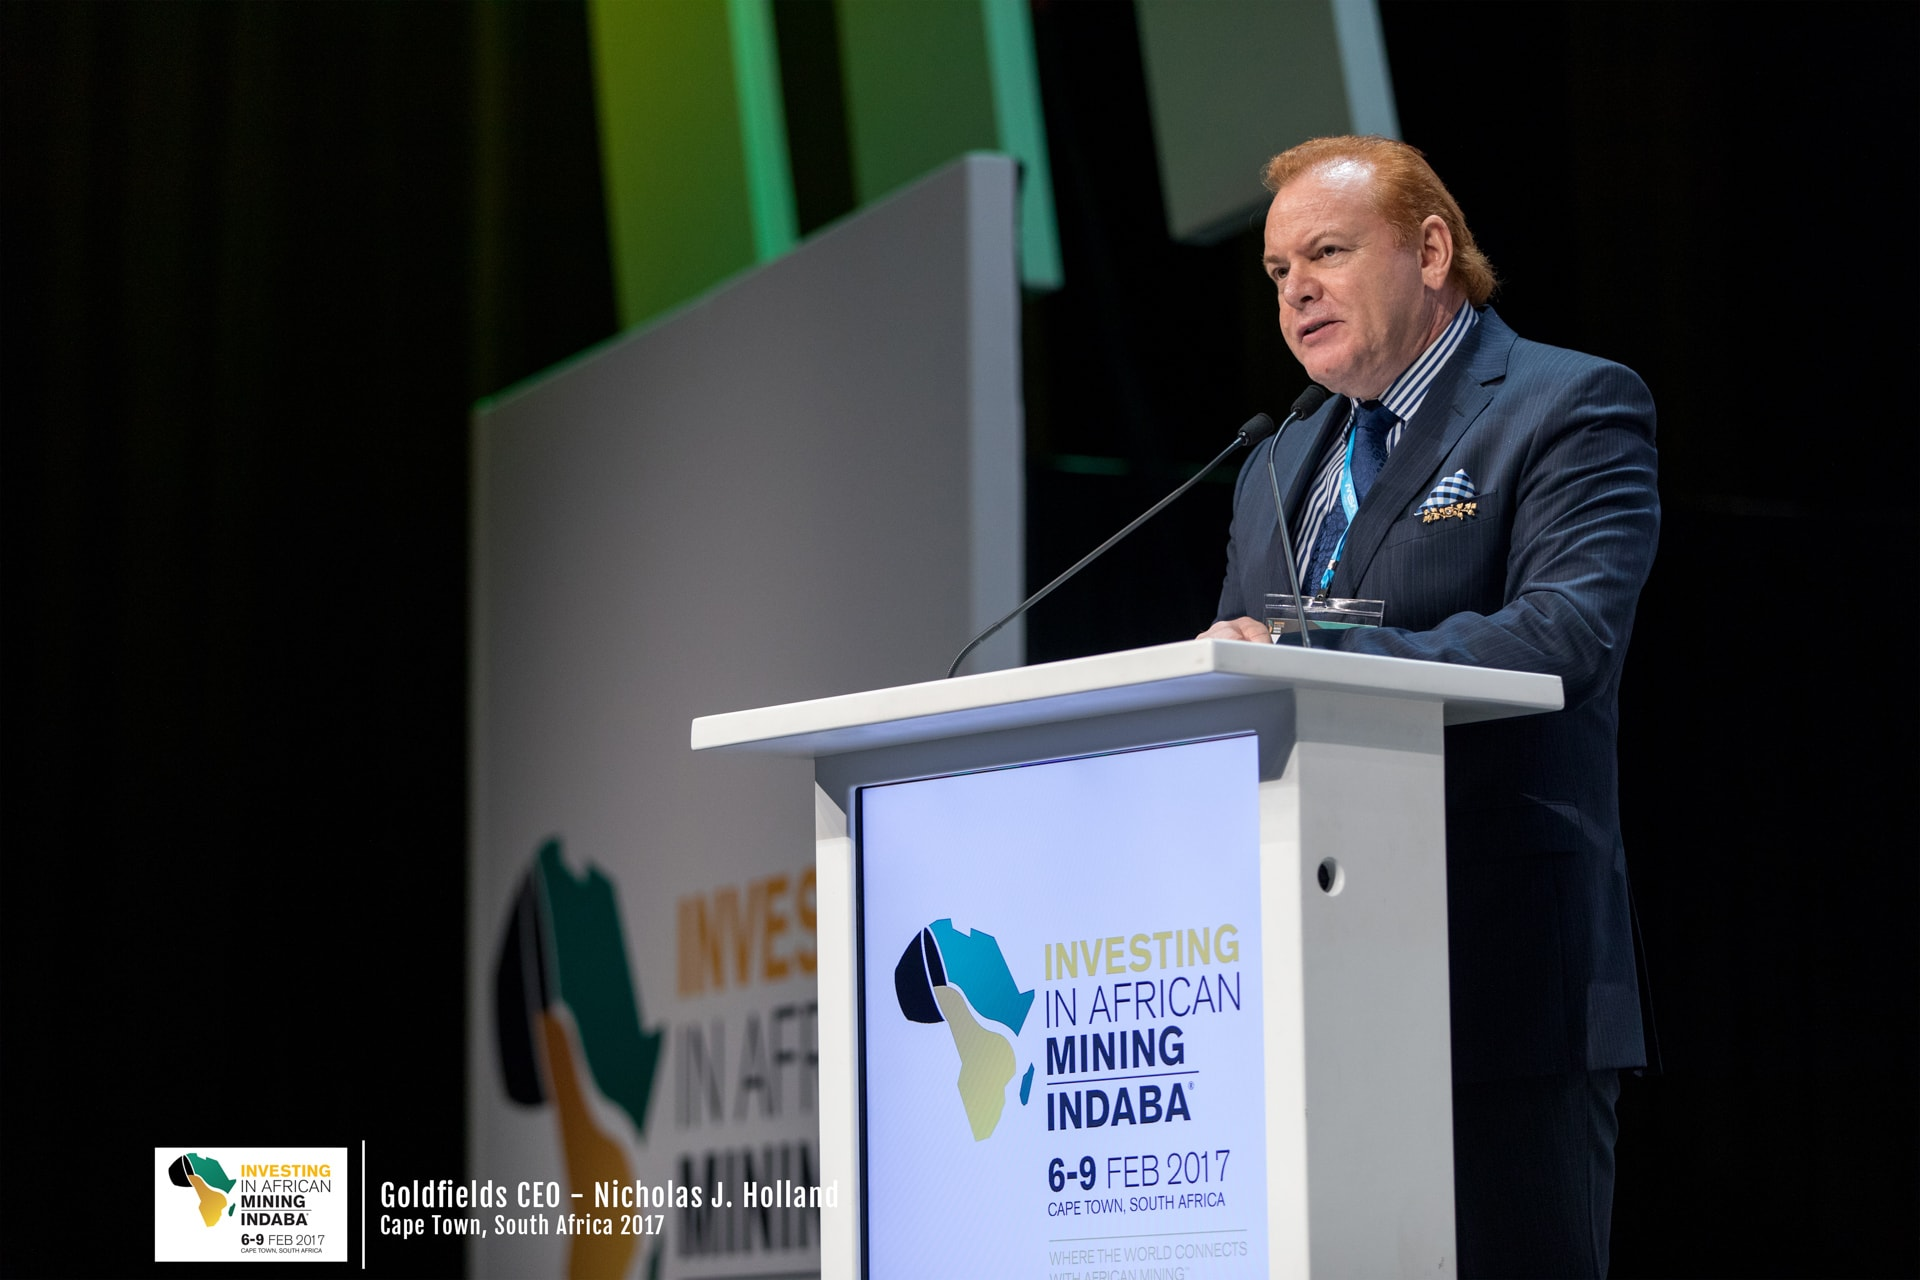 Event Photo of Nicholas J Holland at the Mining Indaba